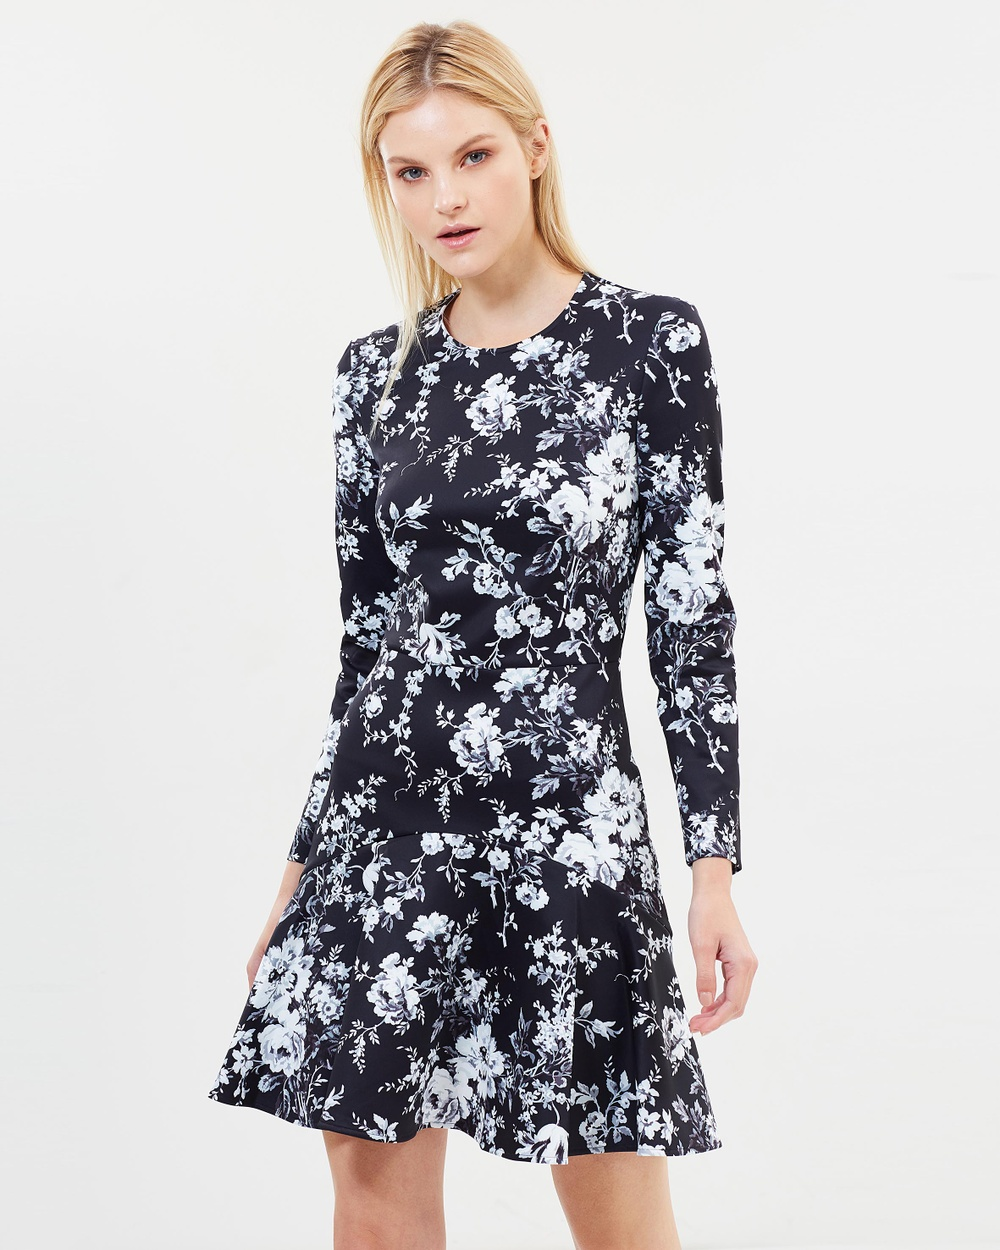 Lover Sonnet Mini Flip Dress Printed Dresses Black Sonnet Mini Flip Dress